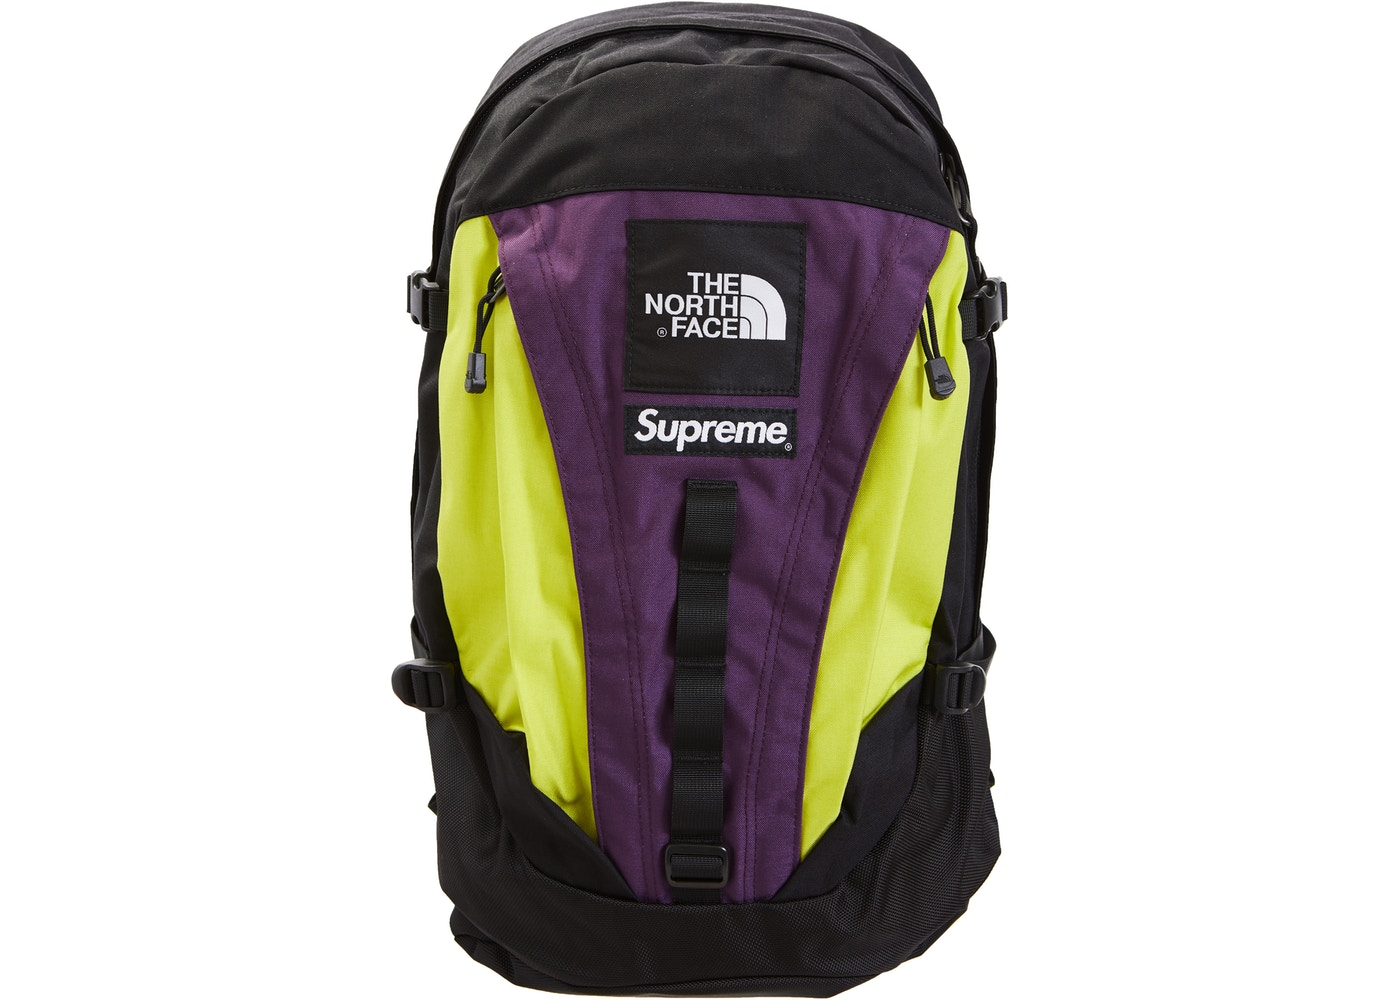 330b5cabc Supreme The North Face Expedition Backpack Sulphur